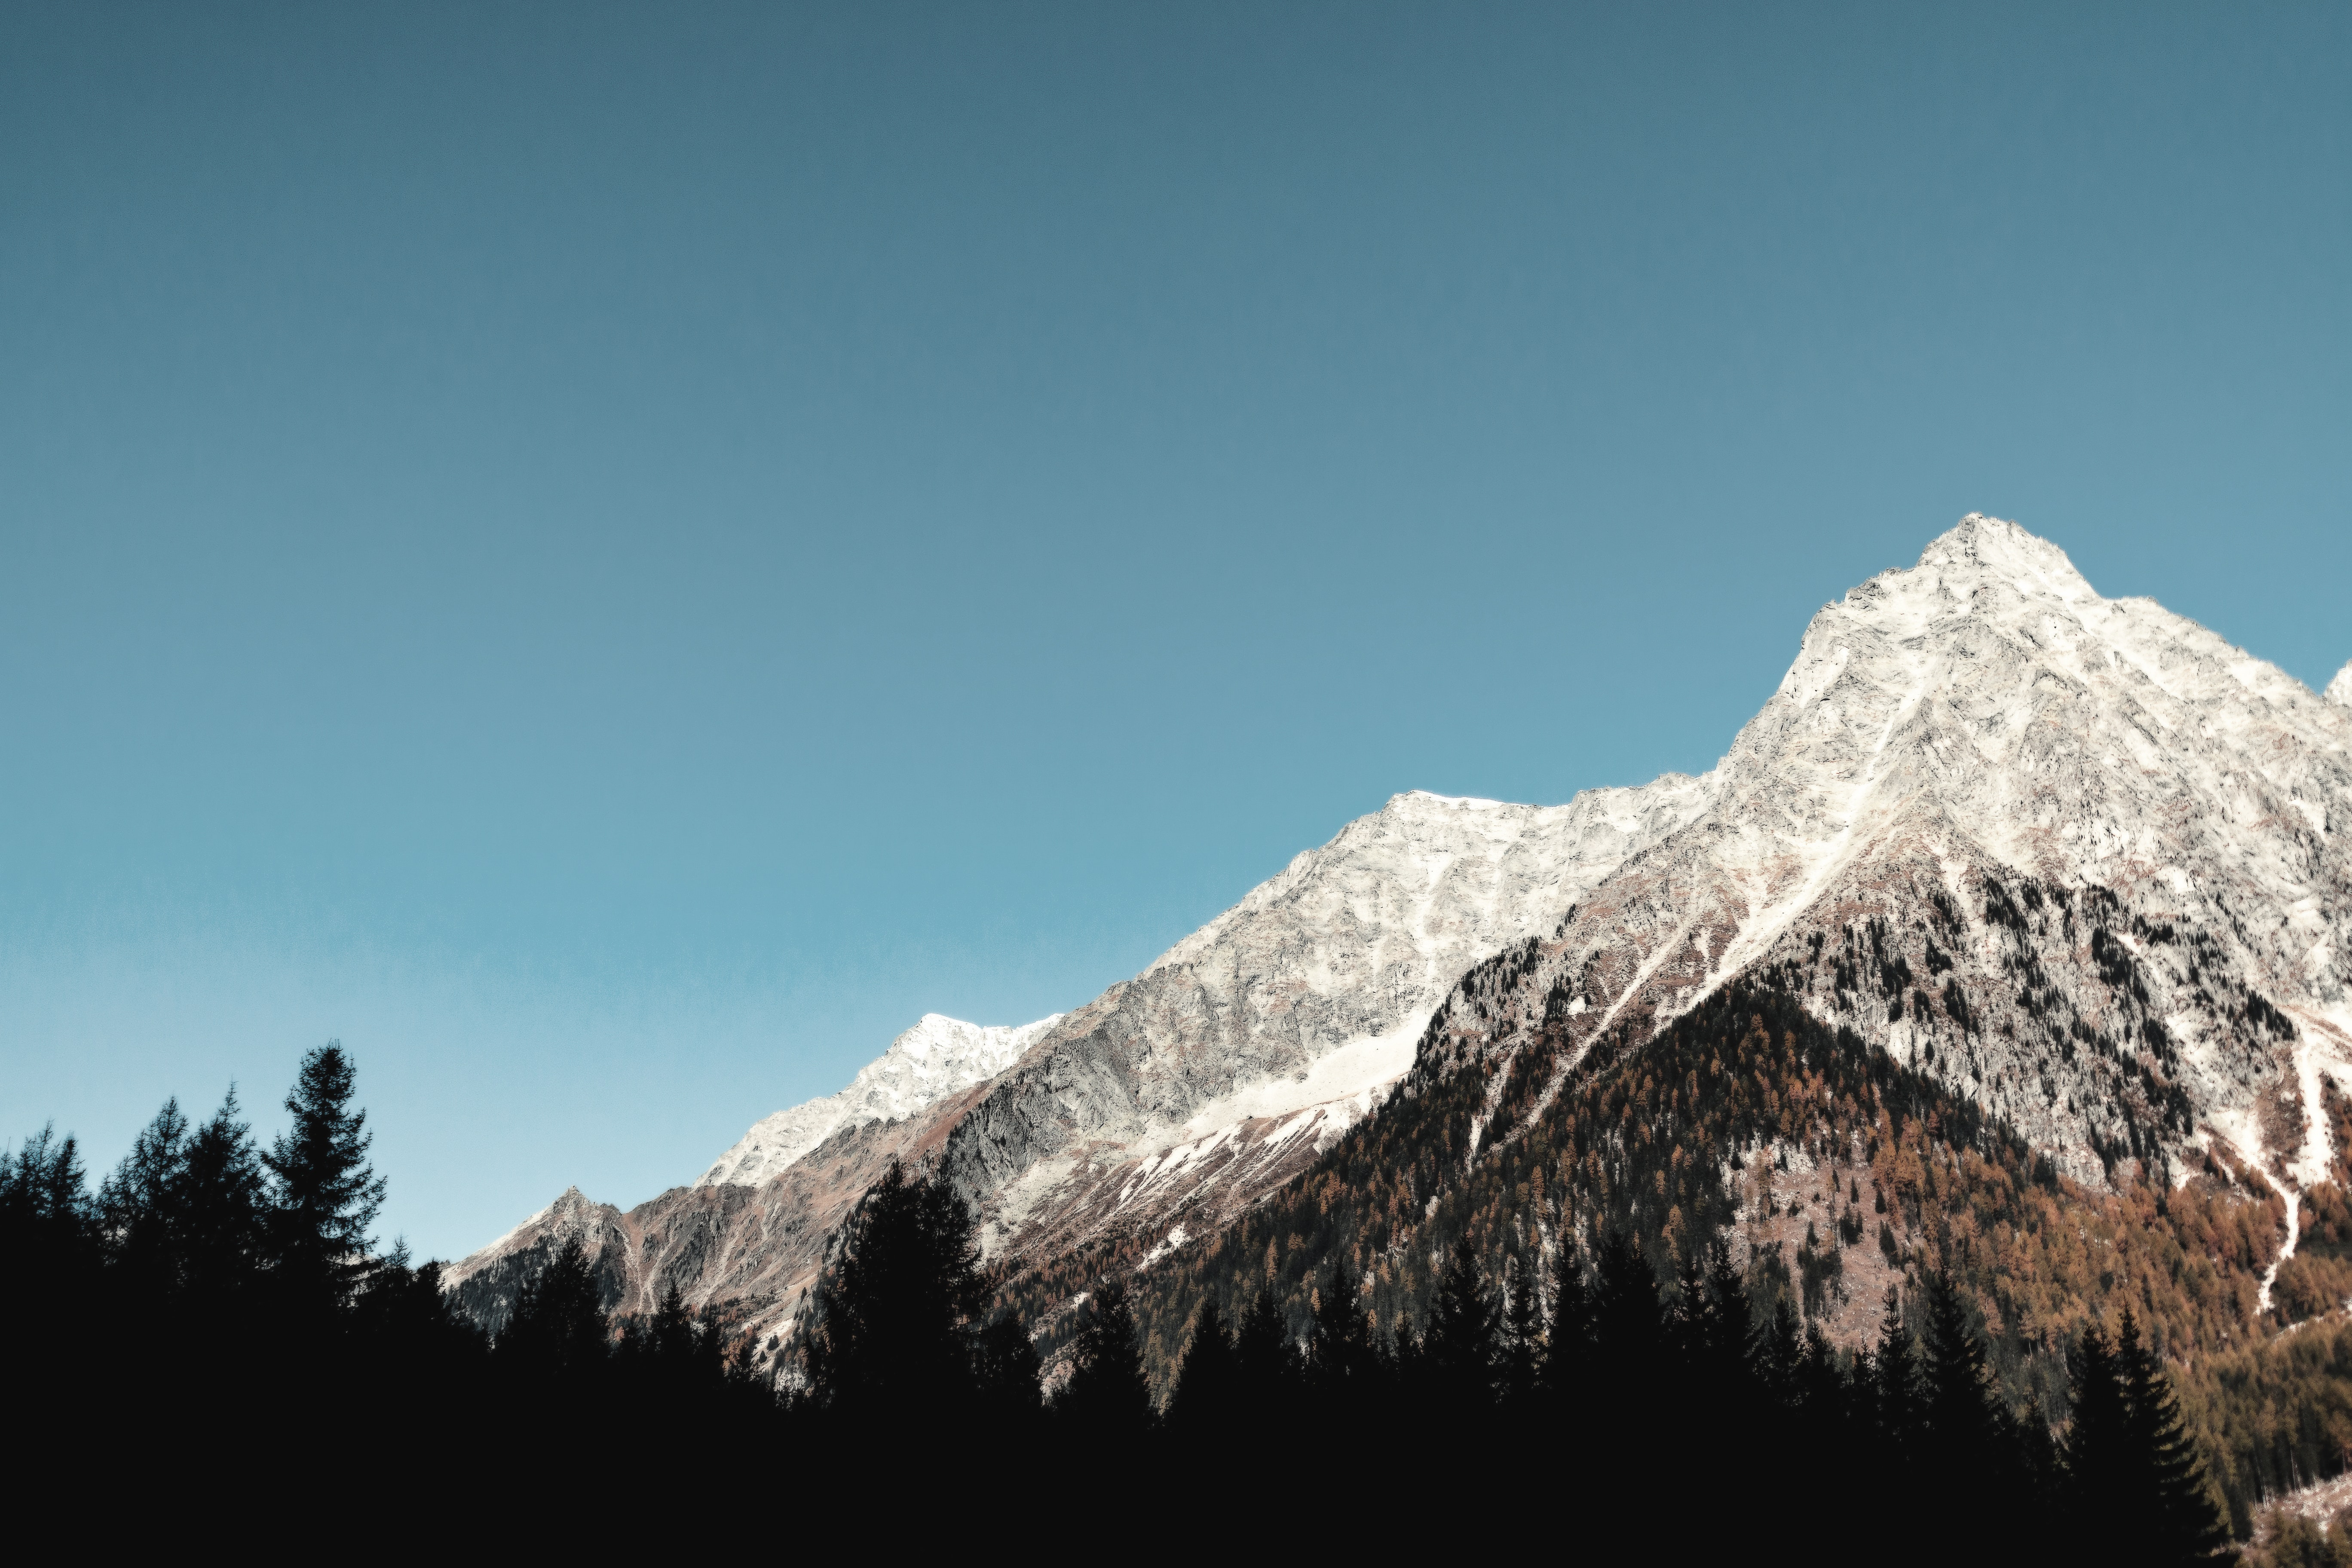 Snow-covered Mountain, Adventure, Mountain, Winter, Trees, HQ Photo